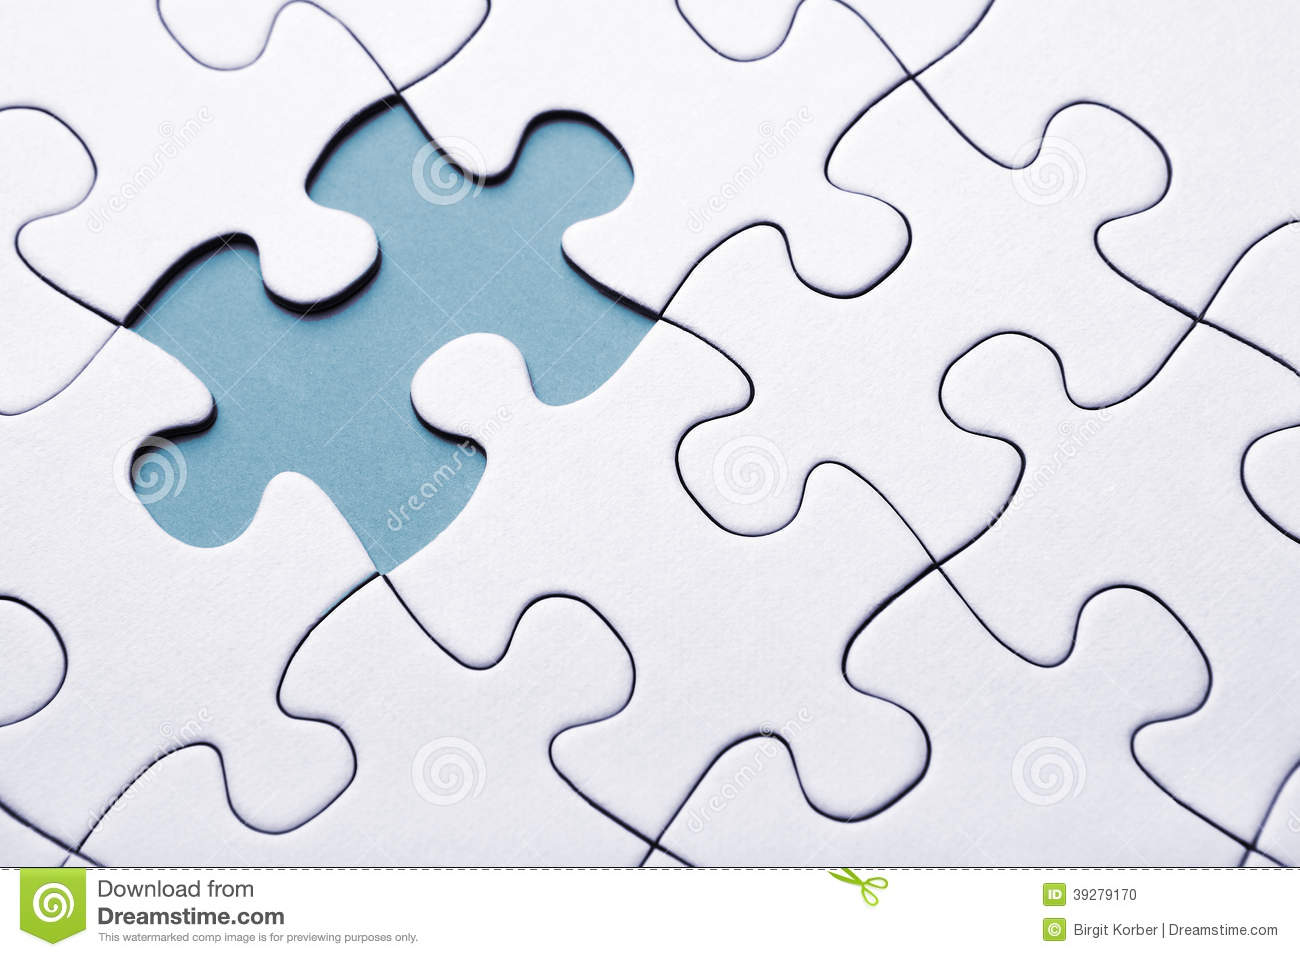 Blue puzzle piece missing